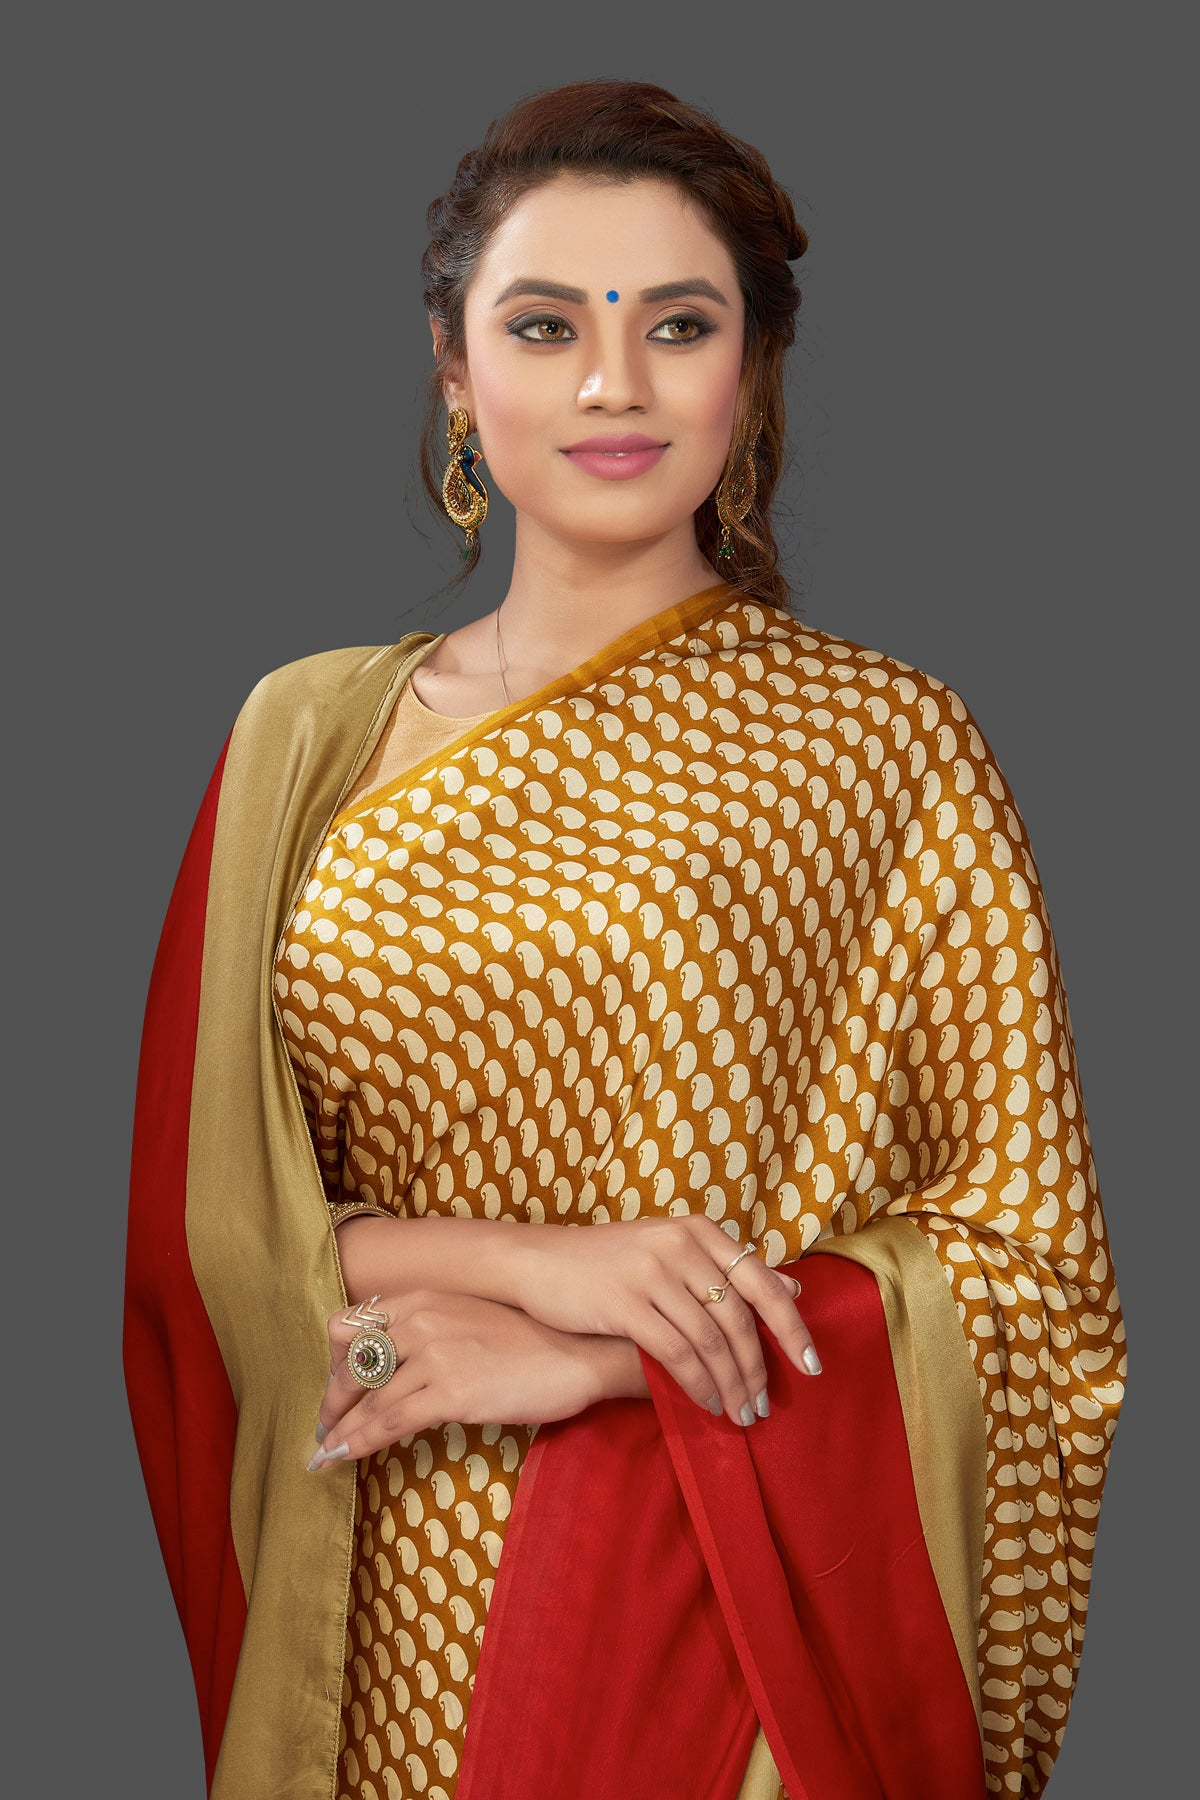 Shop mustard printed crepe silk saree online in USA with solid red border. Elevate your Indian style on special occasions in beautiful designer sarees, crepe silk sarees, georgette saris, printed sarees from Pure Elegance Indian clothing store in USA.-closeup